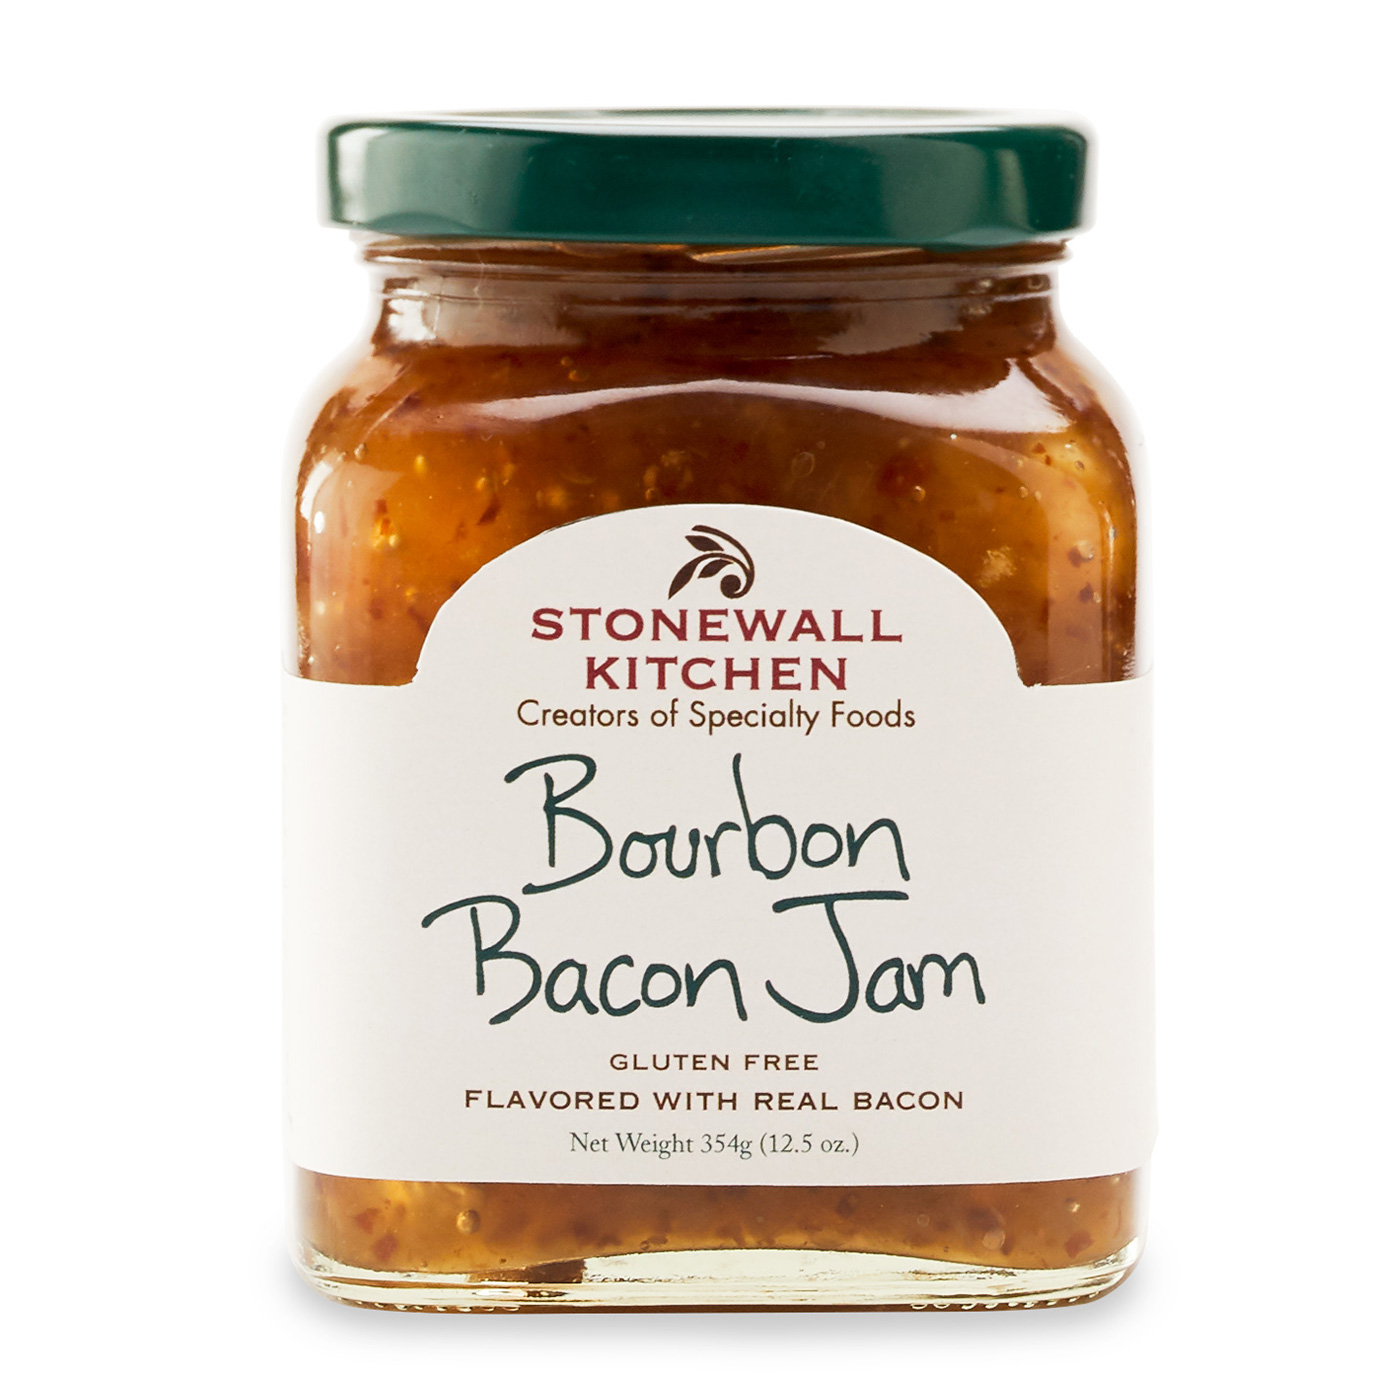 stonewall kitchen com aid mixer accessories bourbon bacon jam